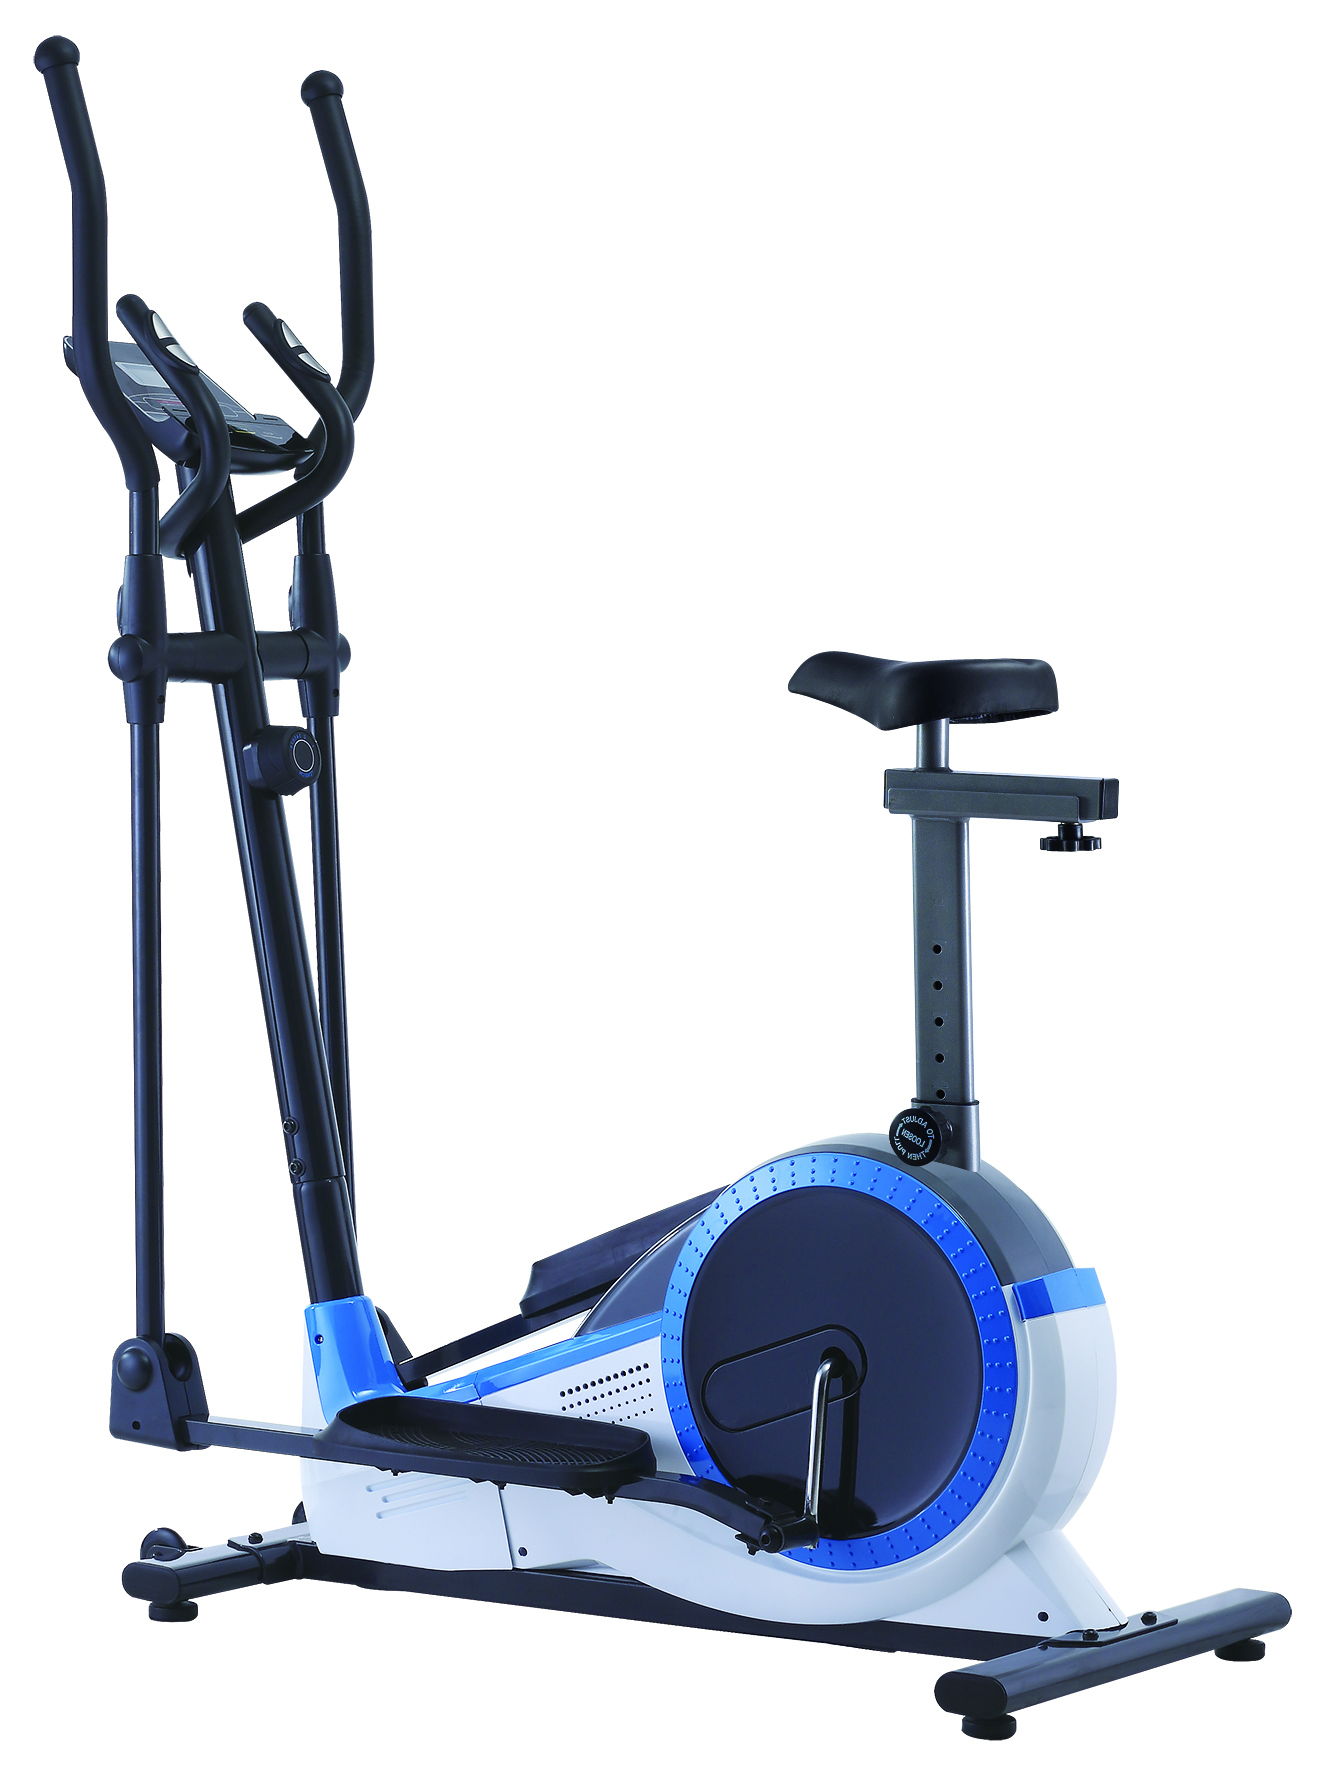 HOME Elliptical Trainer #89502